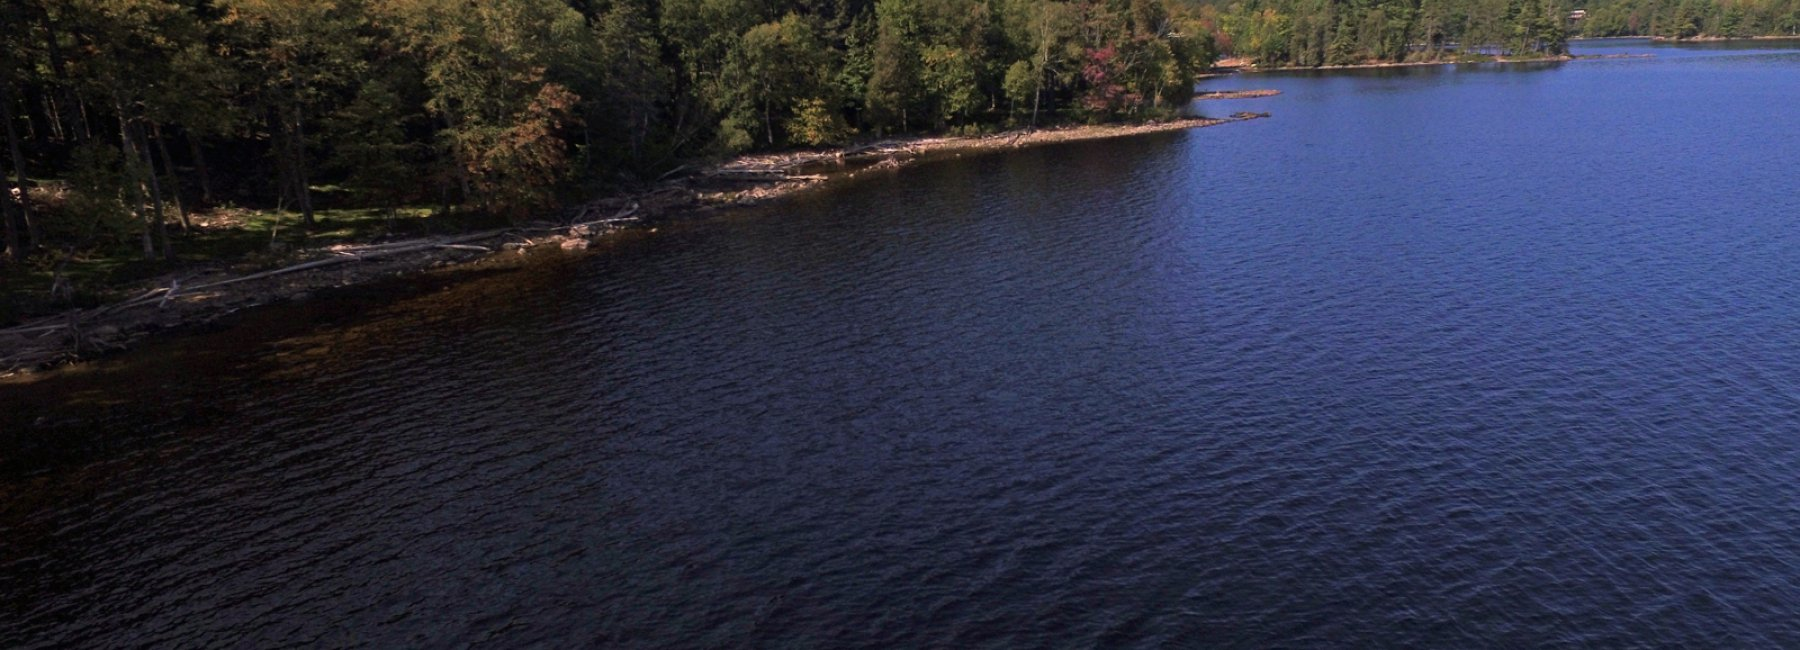 Lot 6 Soterra Court, Haliburton - Percy Lake